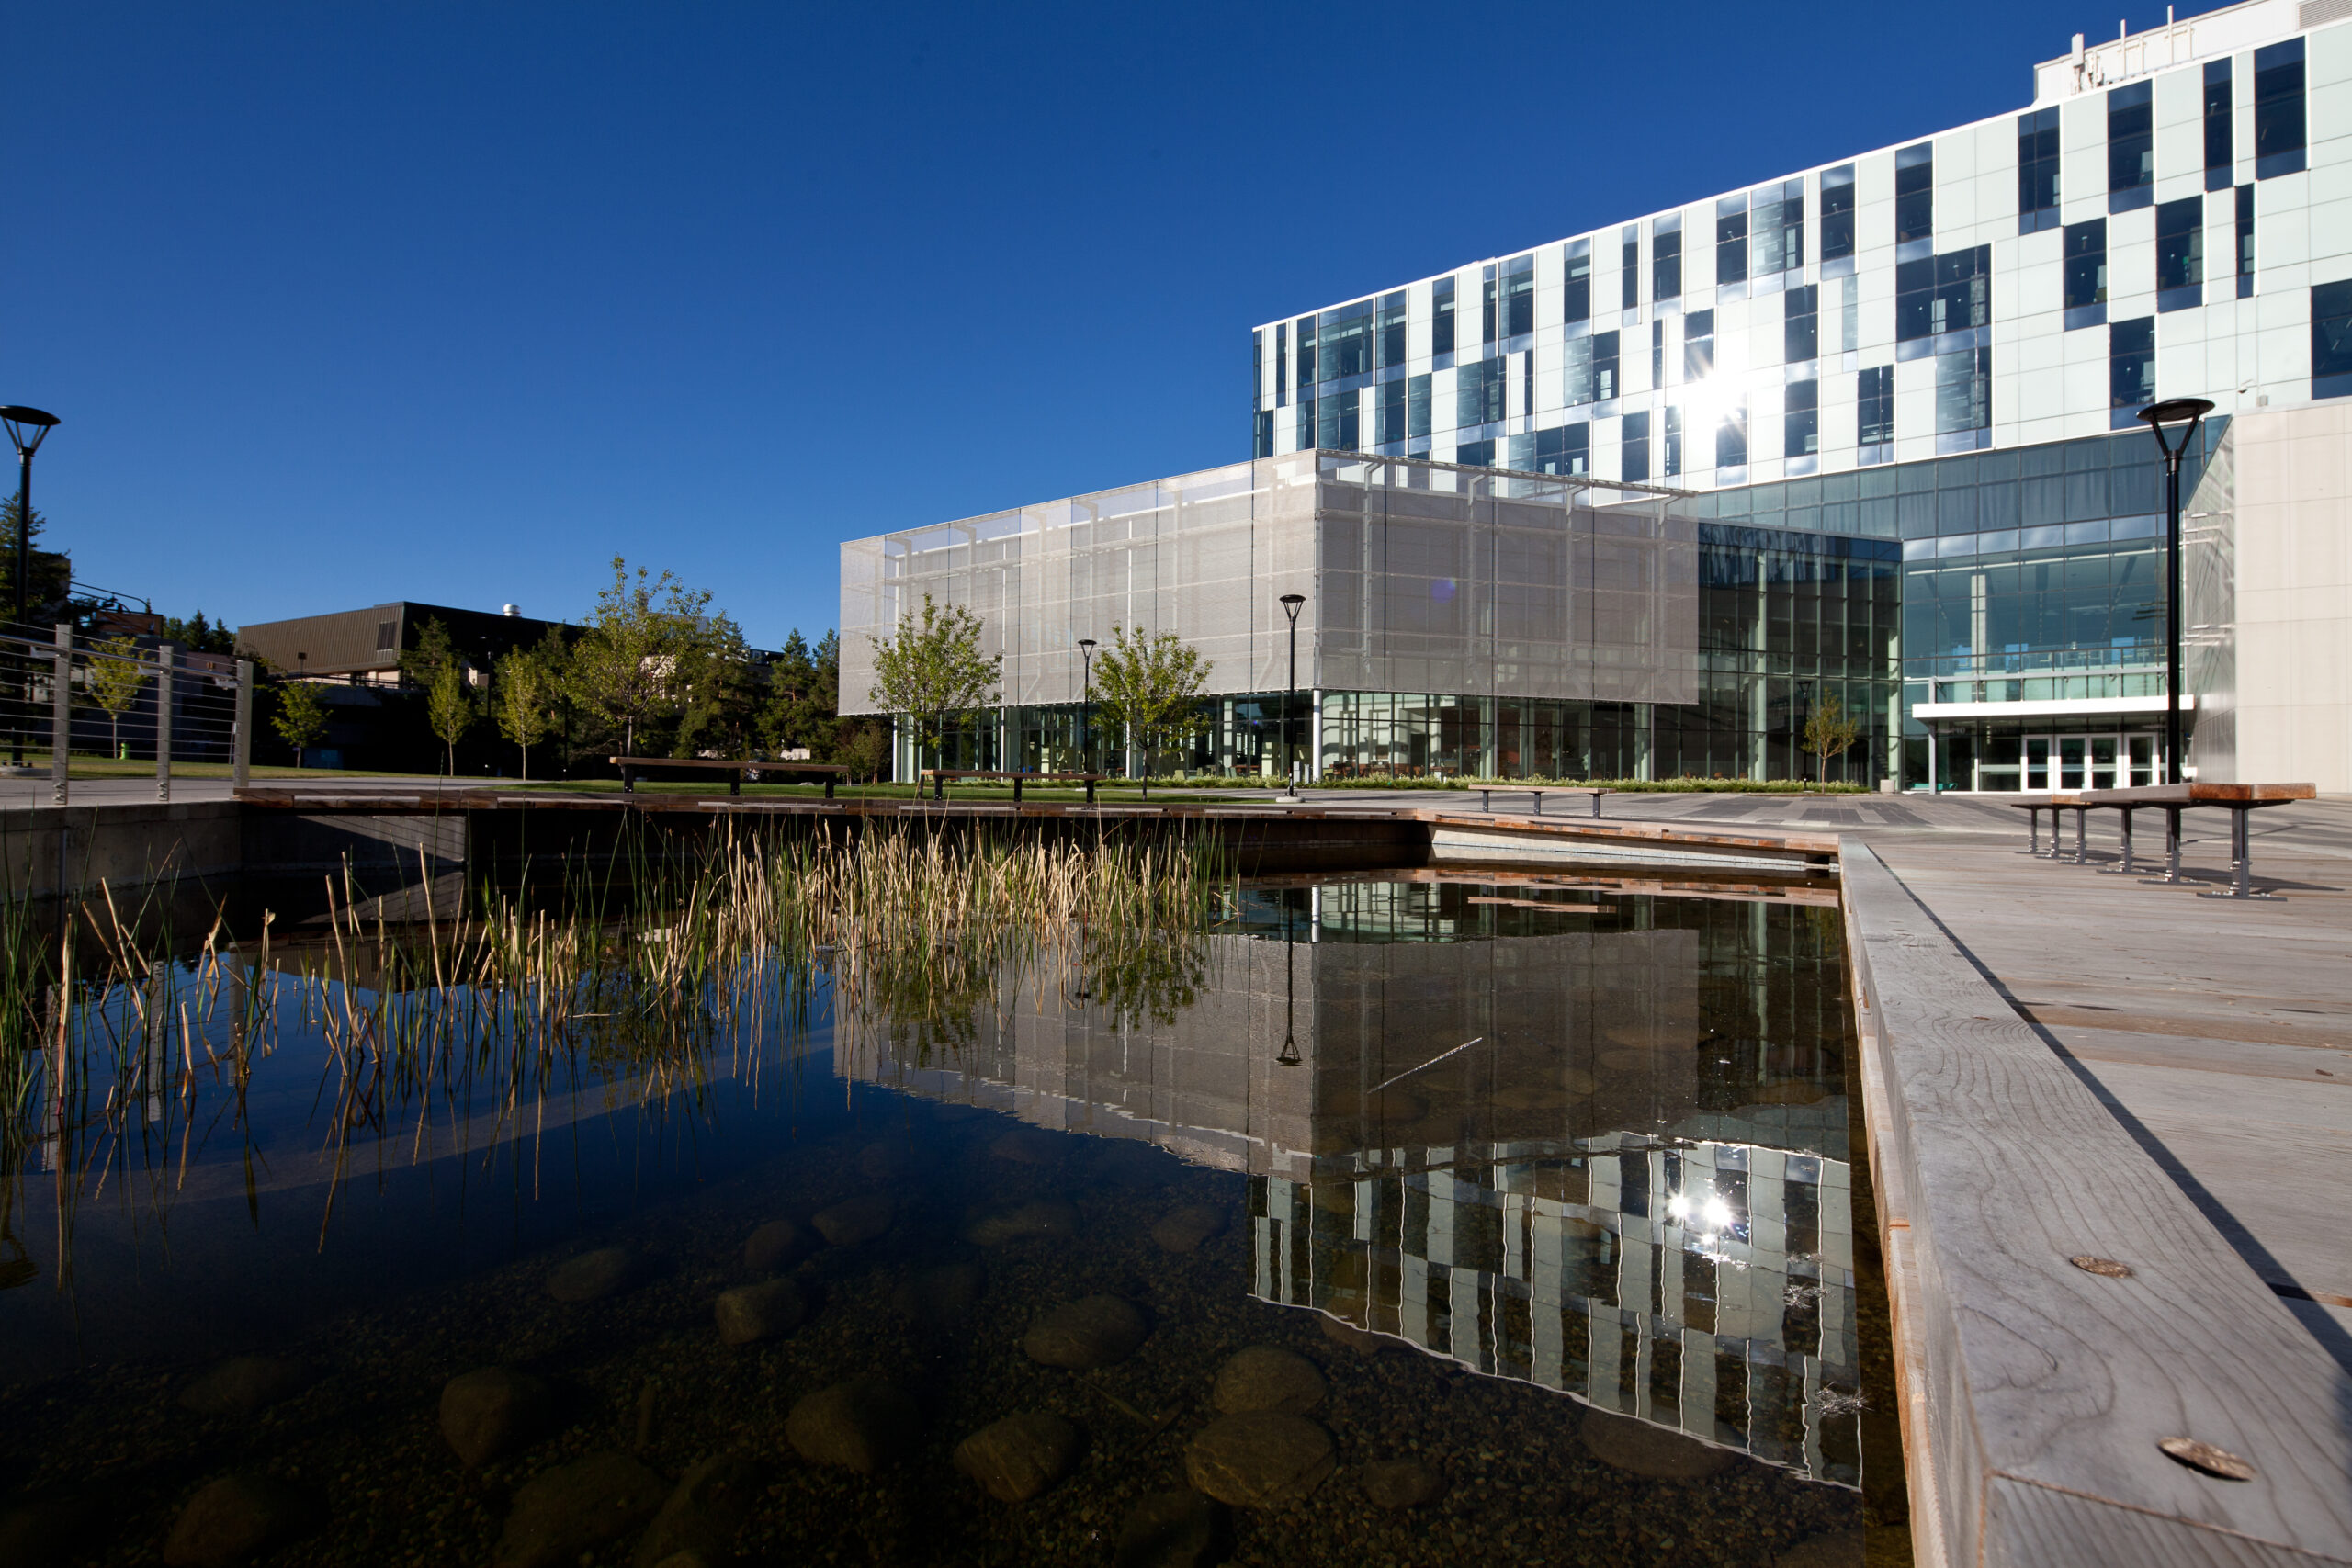 University of Calgary Library with Cambridge Architectural Mesh